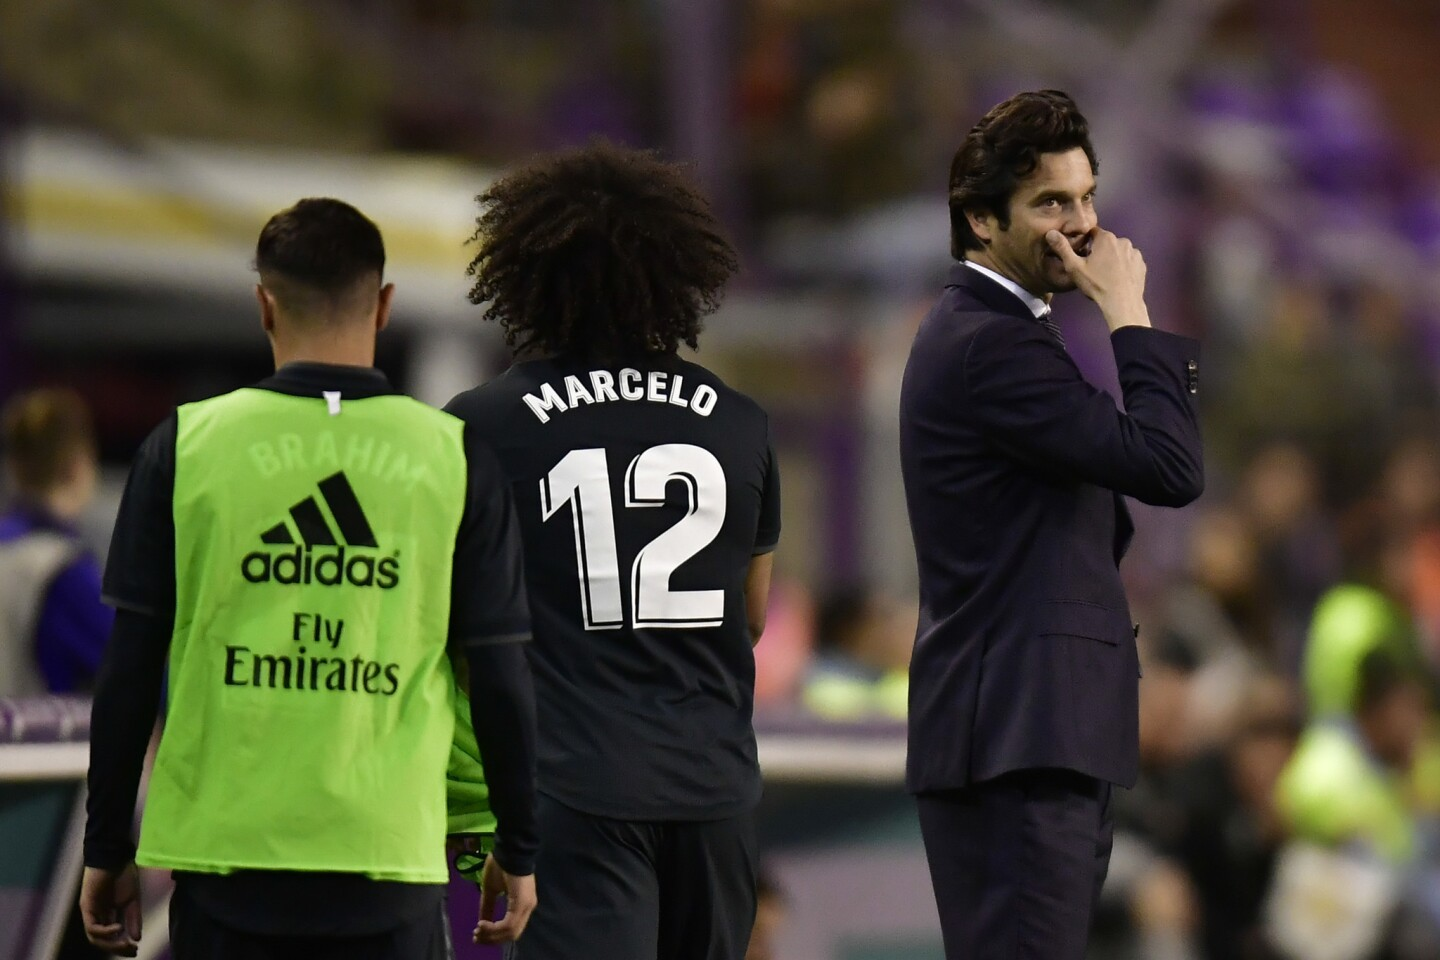 Real Madrid's head manager Santiago Solari gives instructions to Marcelo Vieira during the Spanish La Liga soccer match between Real Madrid and Valladoid FC at Jose Zorrila New stadium in Valladolid, northern Spain, Sunday, March 10, 2019.